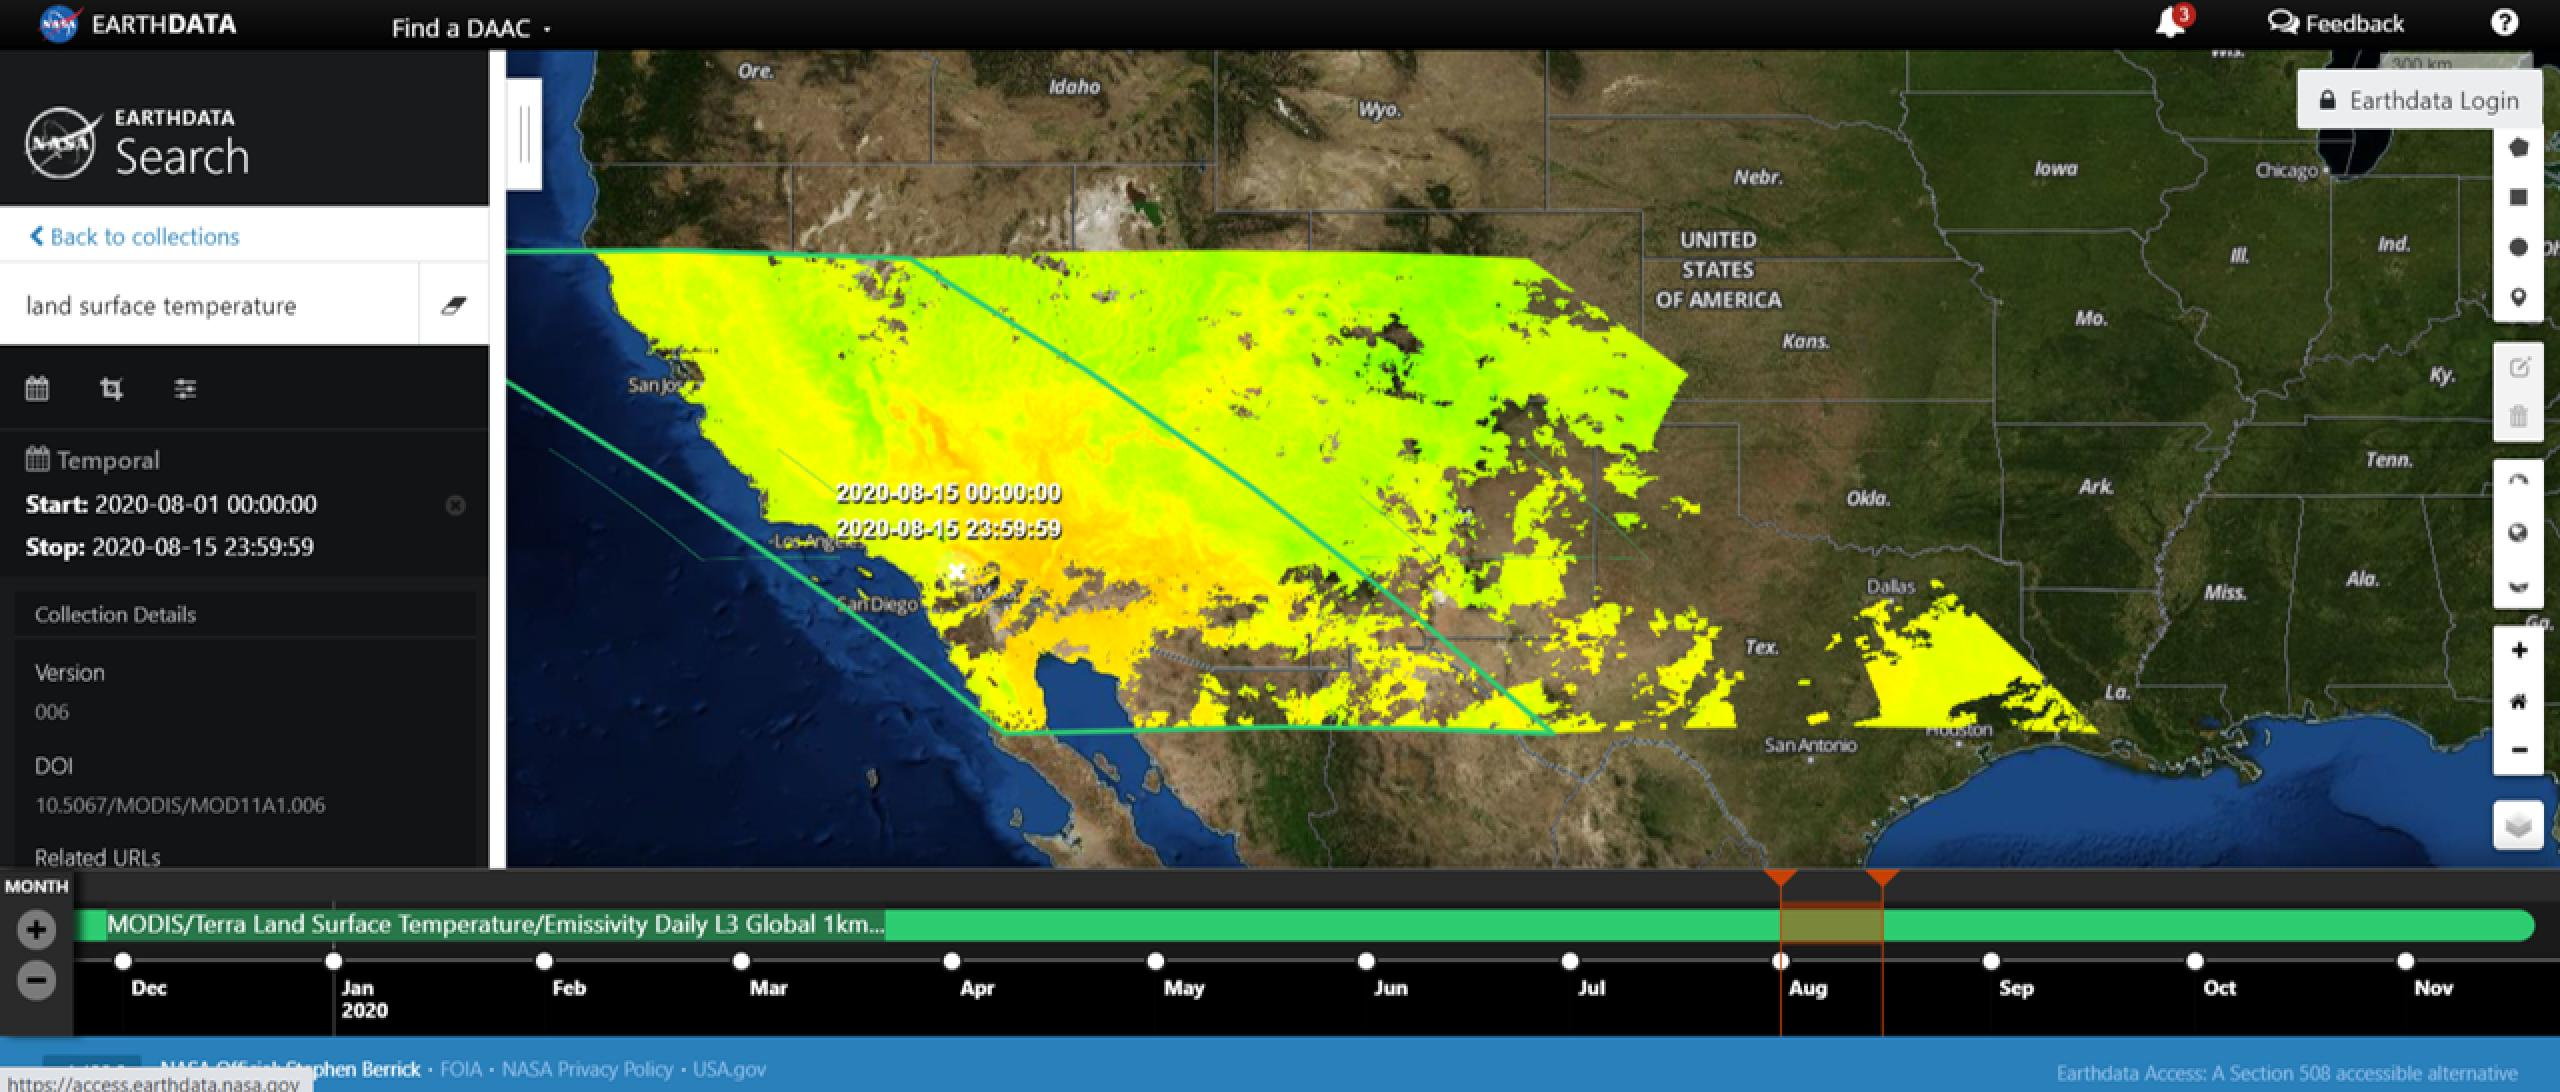 Screenshot of satellite data of the United States with the west coast colored shades or orange, yellow and green